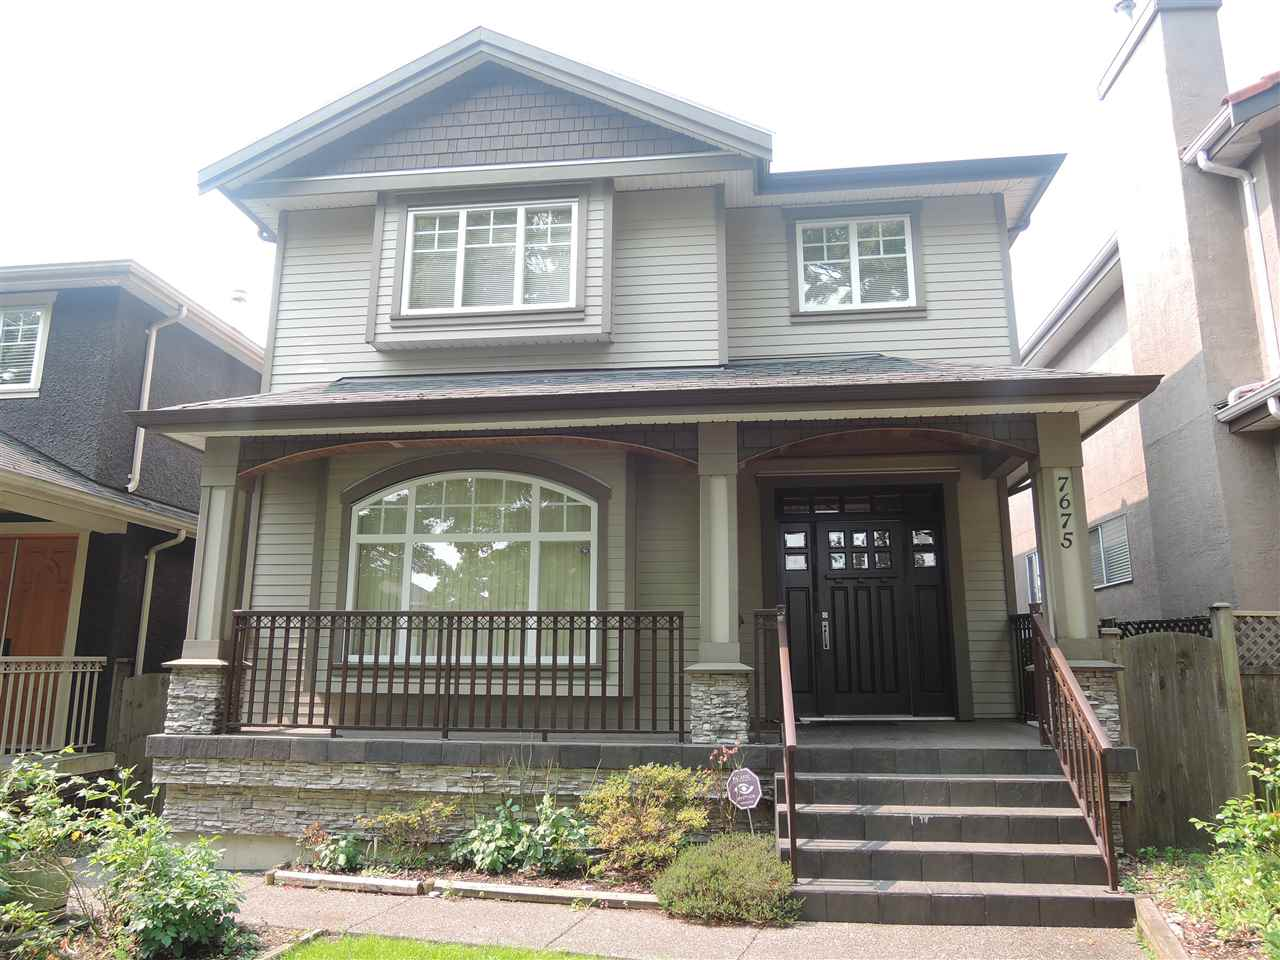 Detached at 7675 CARTIER STREET, Vancouver West, British Columbia. Image 1